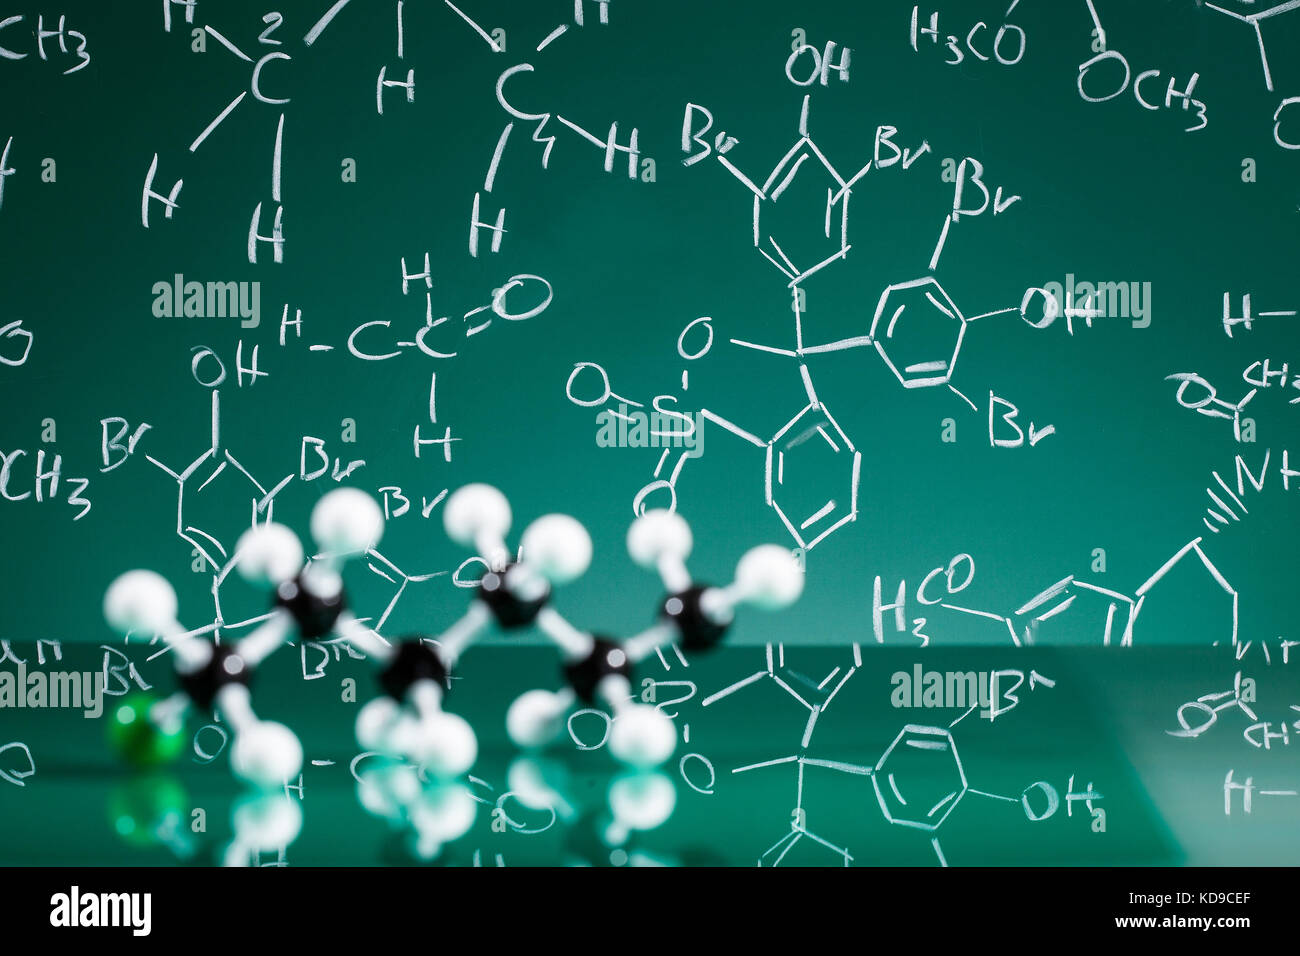 Model of molecular structure on green reflective background - Stock Image